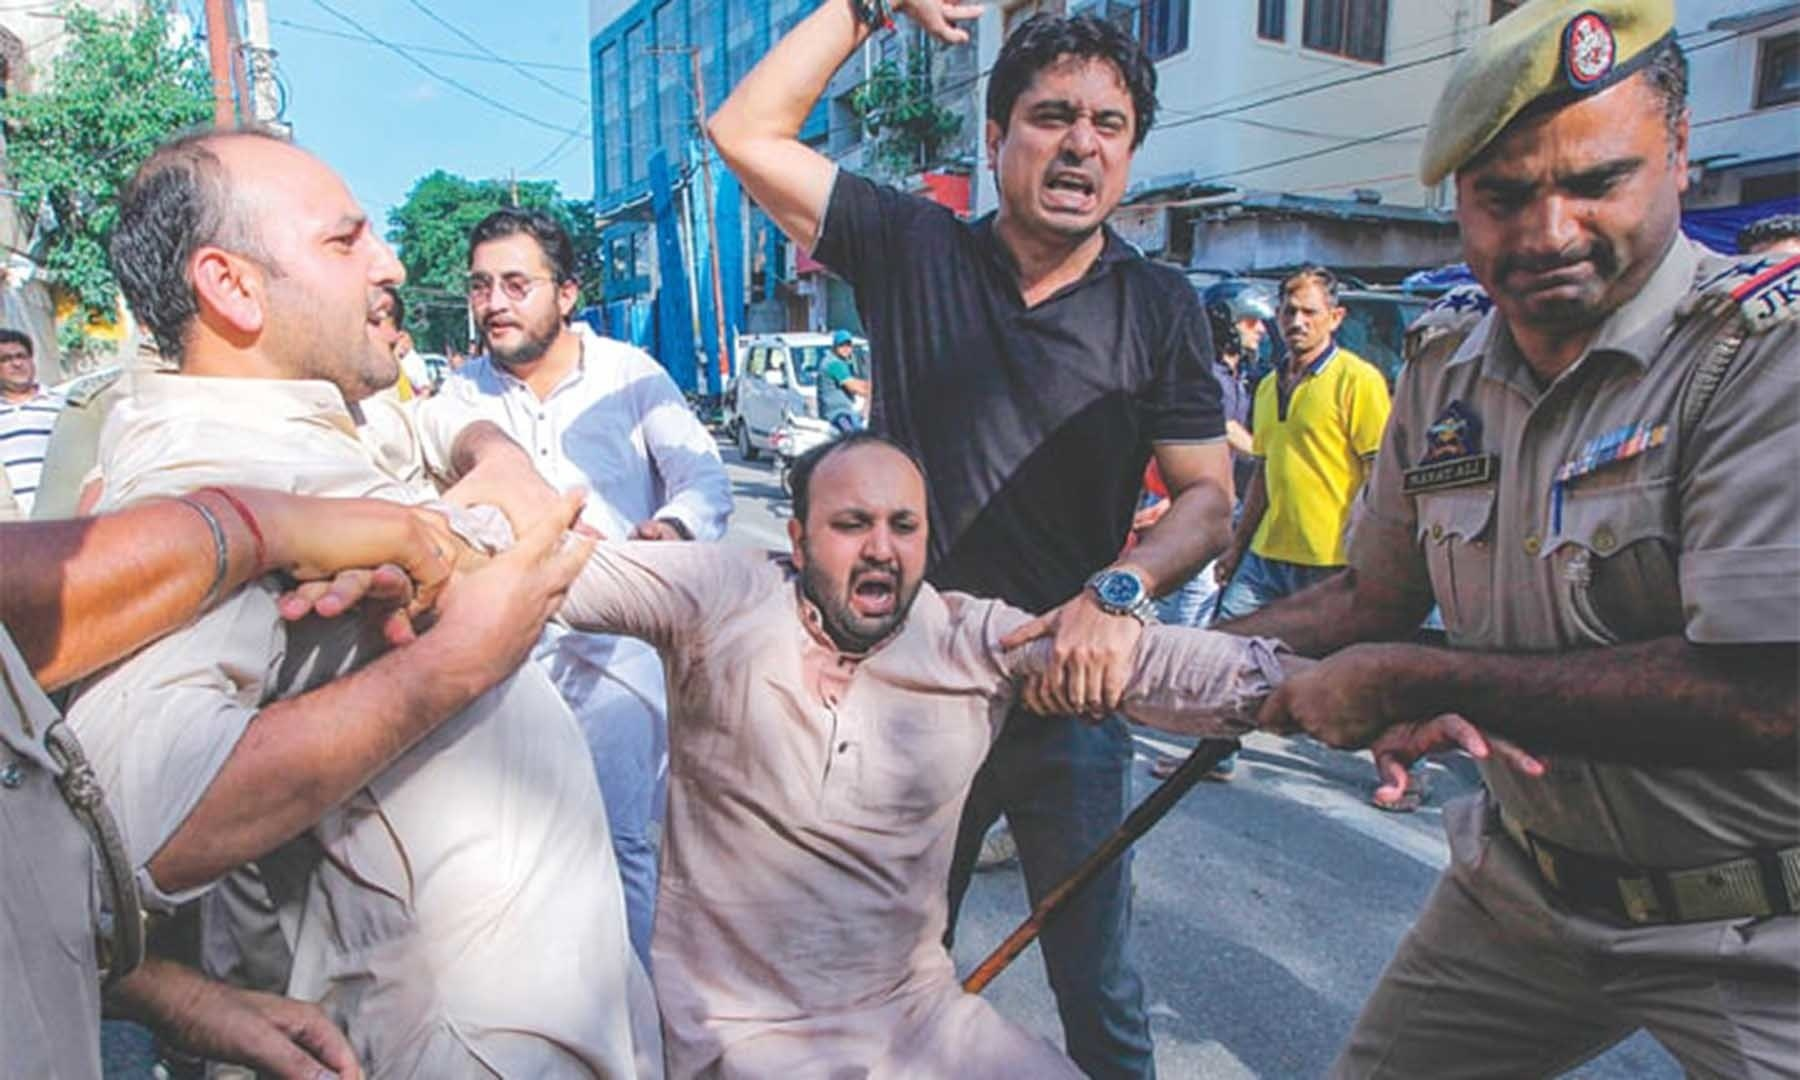 Police taking an activist of Jammu and Kashmir Youth Congress into custody during a protest against the Indian government on Aug 10. — AFP